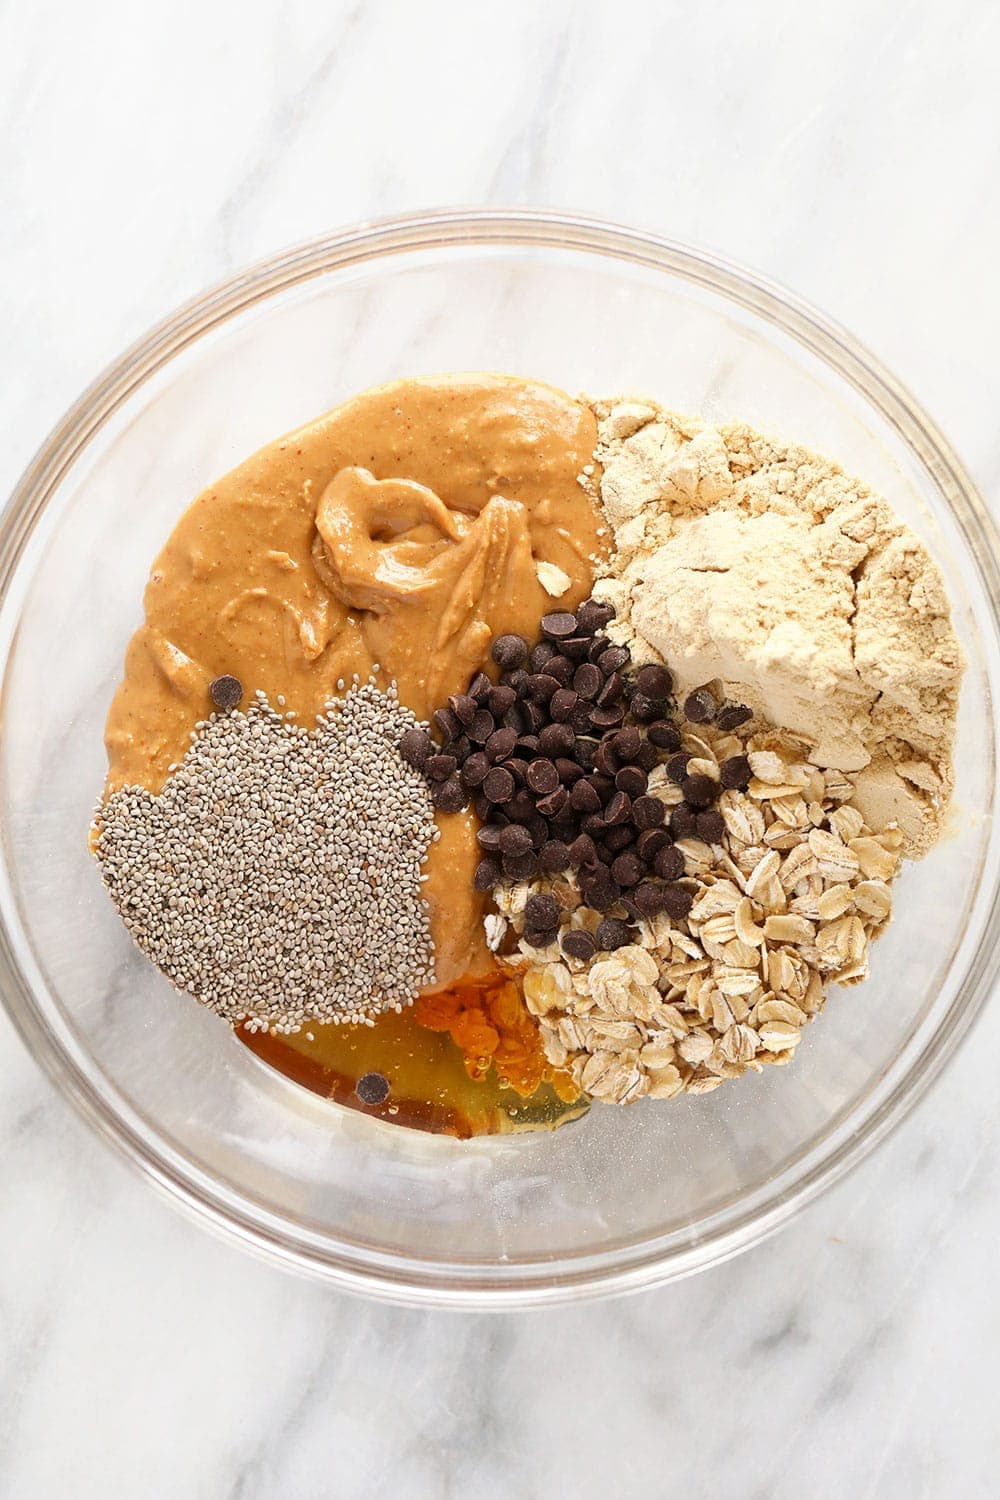 All the ingredients for peanut butter protein balls